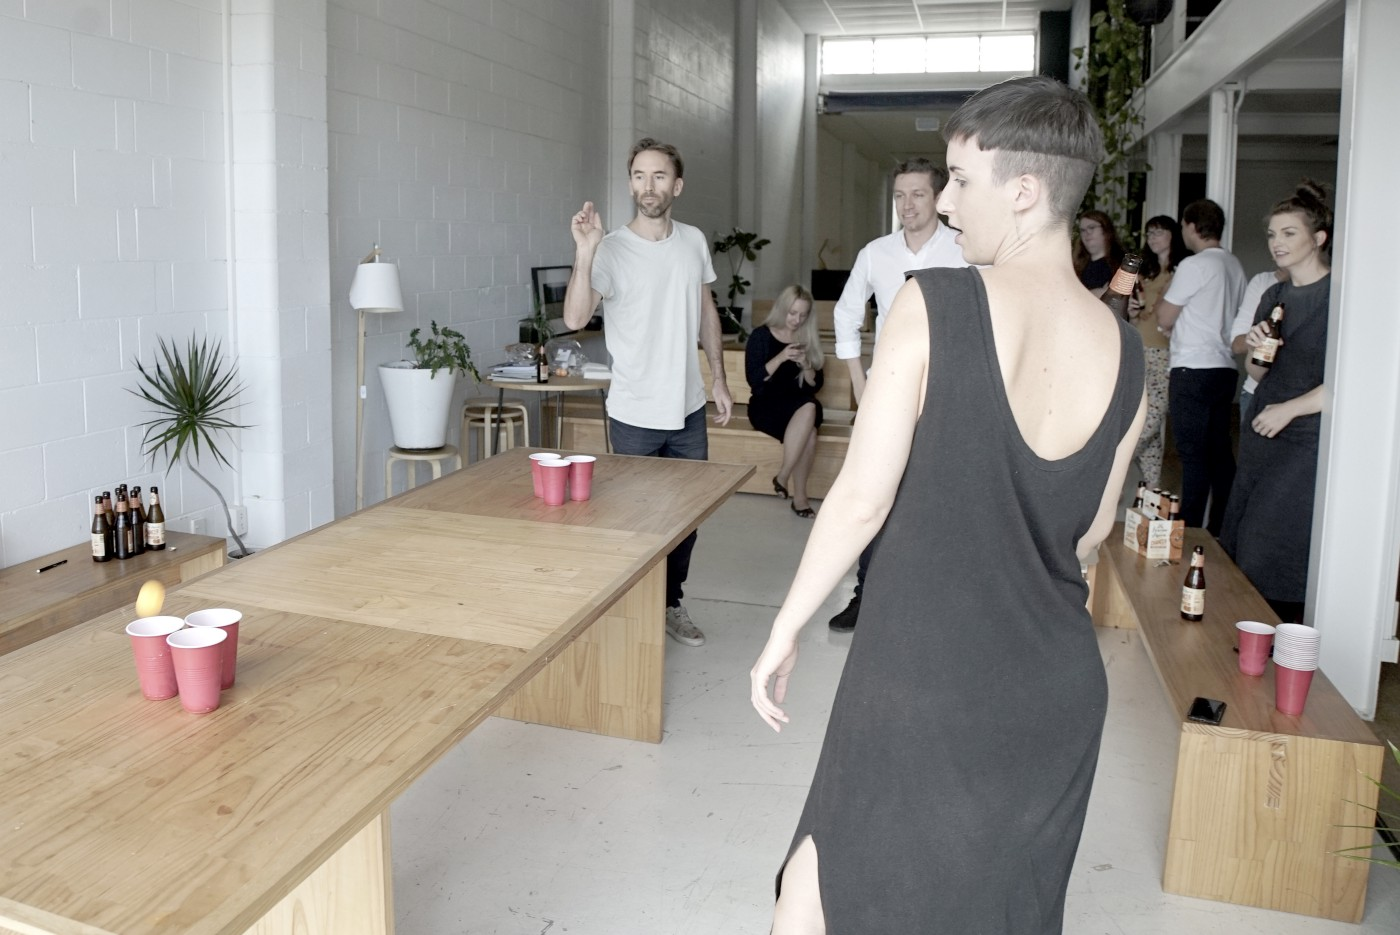 Matt playing beer pong with the team. You can see the slight blur of an orange ball about to land in the cup – he never misses, and it's INFURIATING.